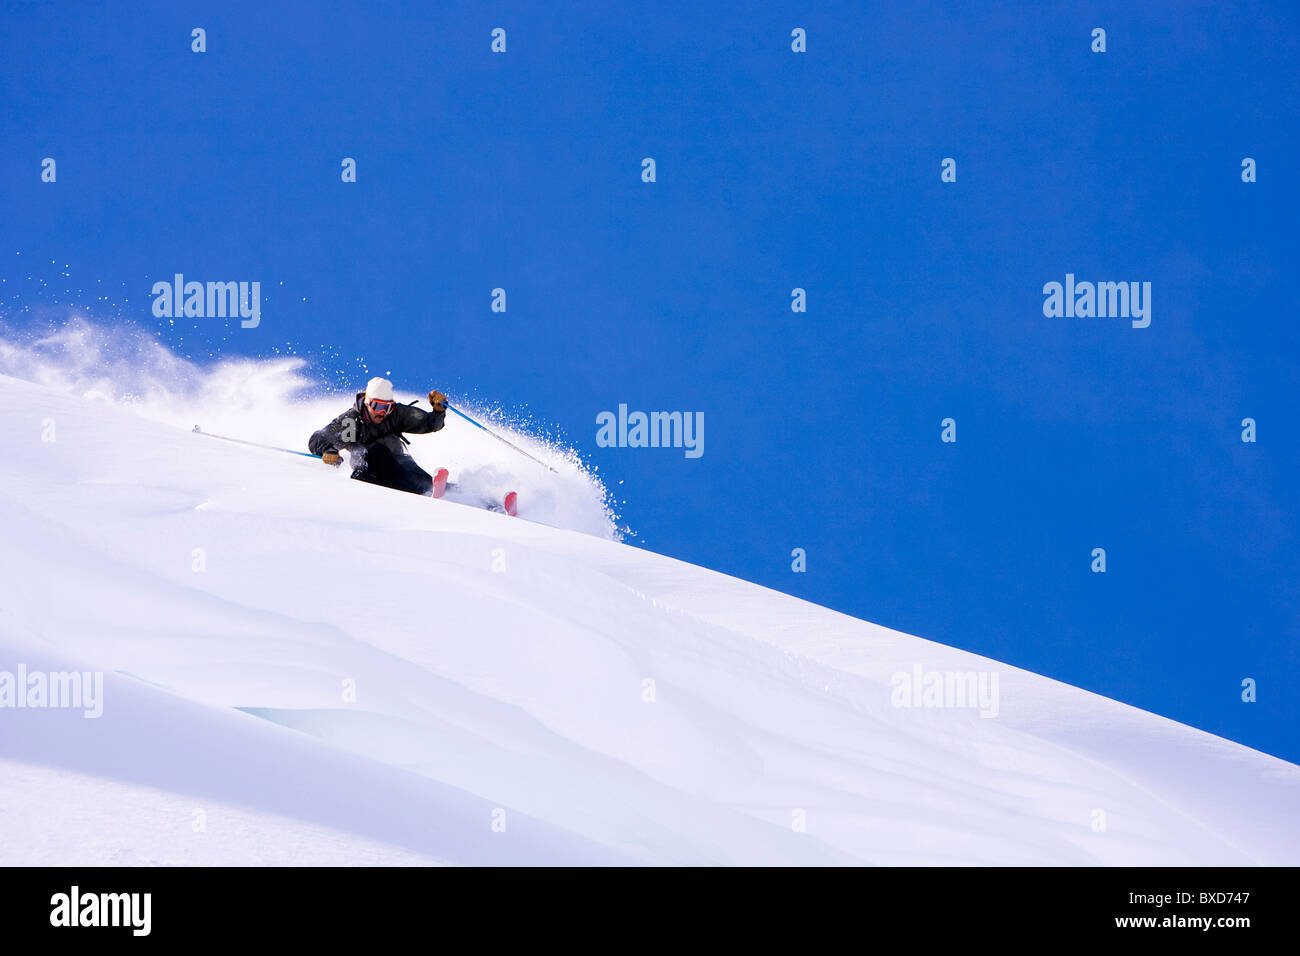 A man prepares to catch some air on a sunny day in Austria. - Stock Image